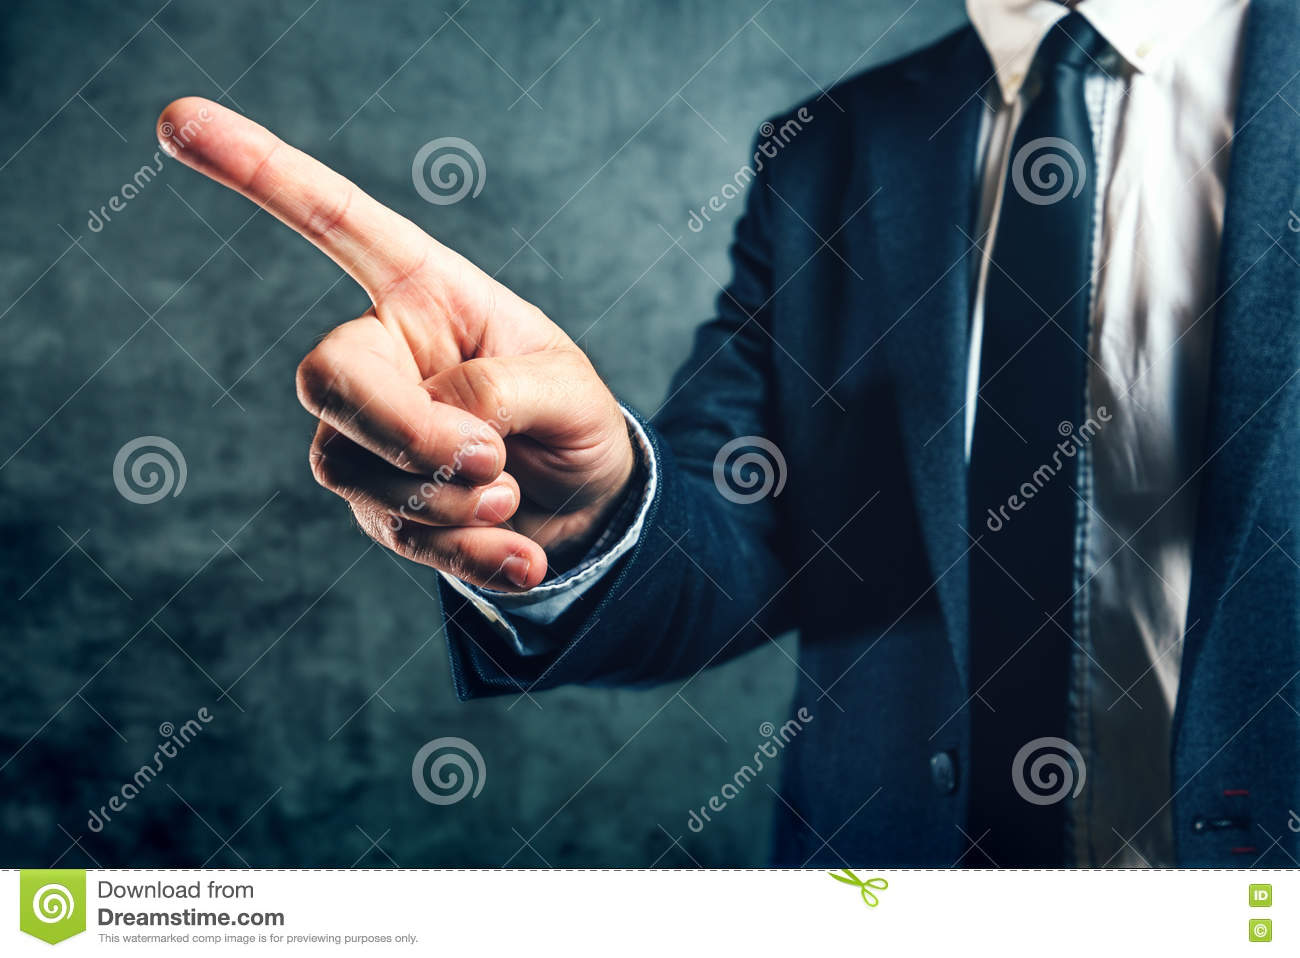 getting fired from job office manager showing way out stock photo getting fired from job office manager showing way out